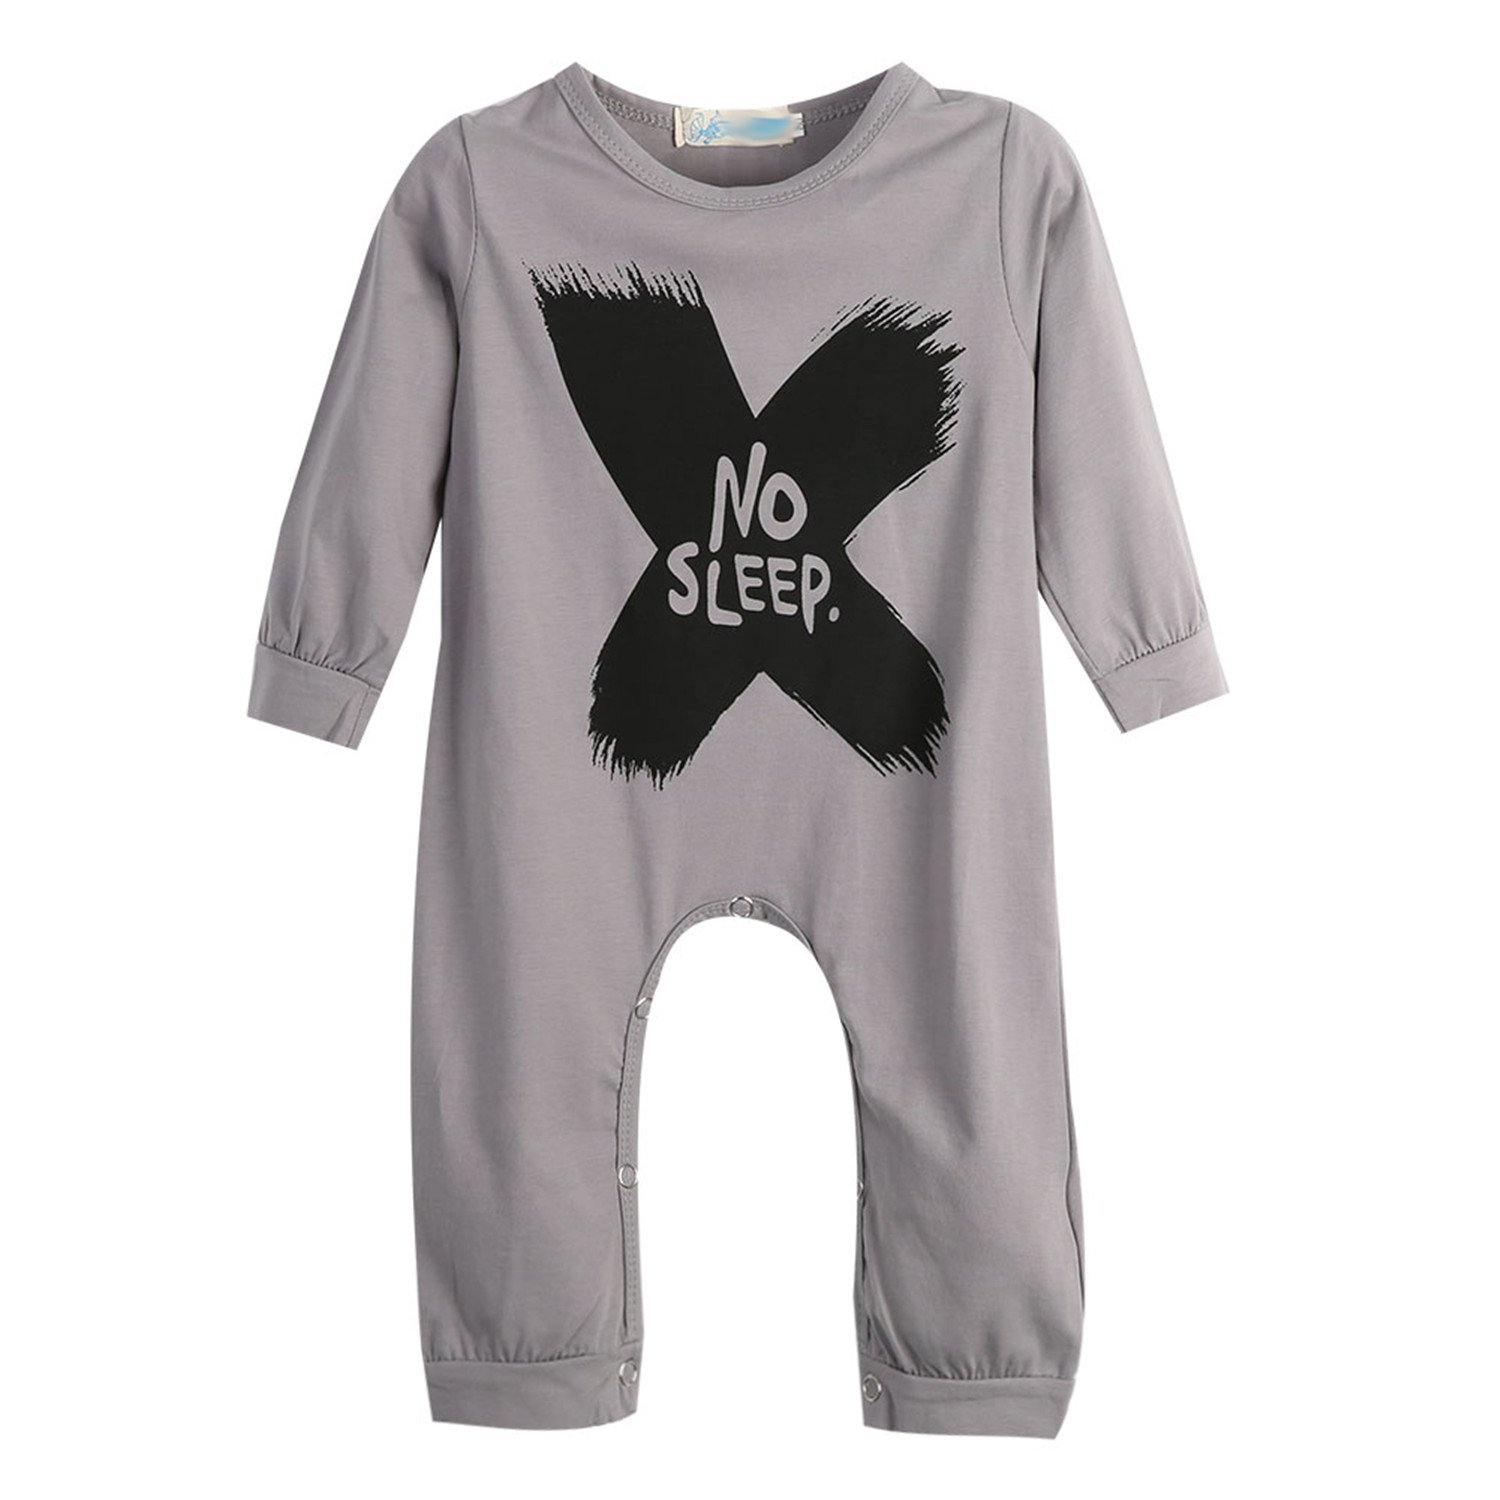 Susan1999 New Baby Girls Boys Long Sleeve Romper Jumpsuit One-Pieces No Sleep To The Moon